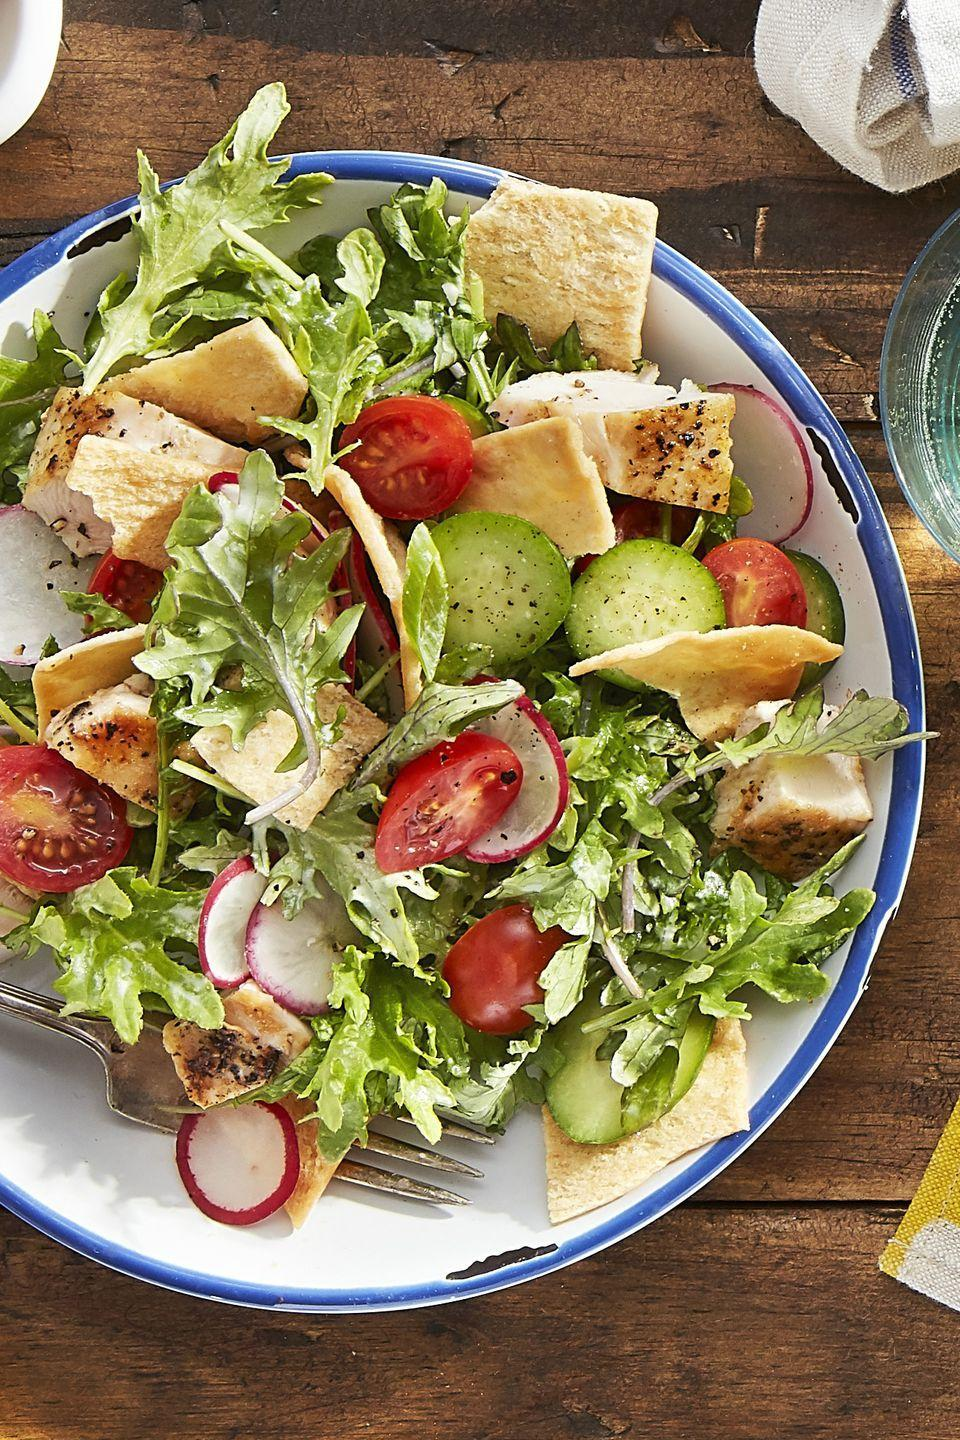 "<p>Cucumbers and radishes bring crunch <em>and </em>color to this baby kale salad.</p><p><strong><a href=""https://www.countryliving.com/food-drinks/recipes/a44243/kale-chicken-pita-salad-recipe/"" rel=""nofollow noopener"" target=""_blank"" data-ylk=""slk:Get the recipe."" class=""link rapid-noclick-resp"">Get the recipe.</a></strong></p>"